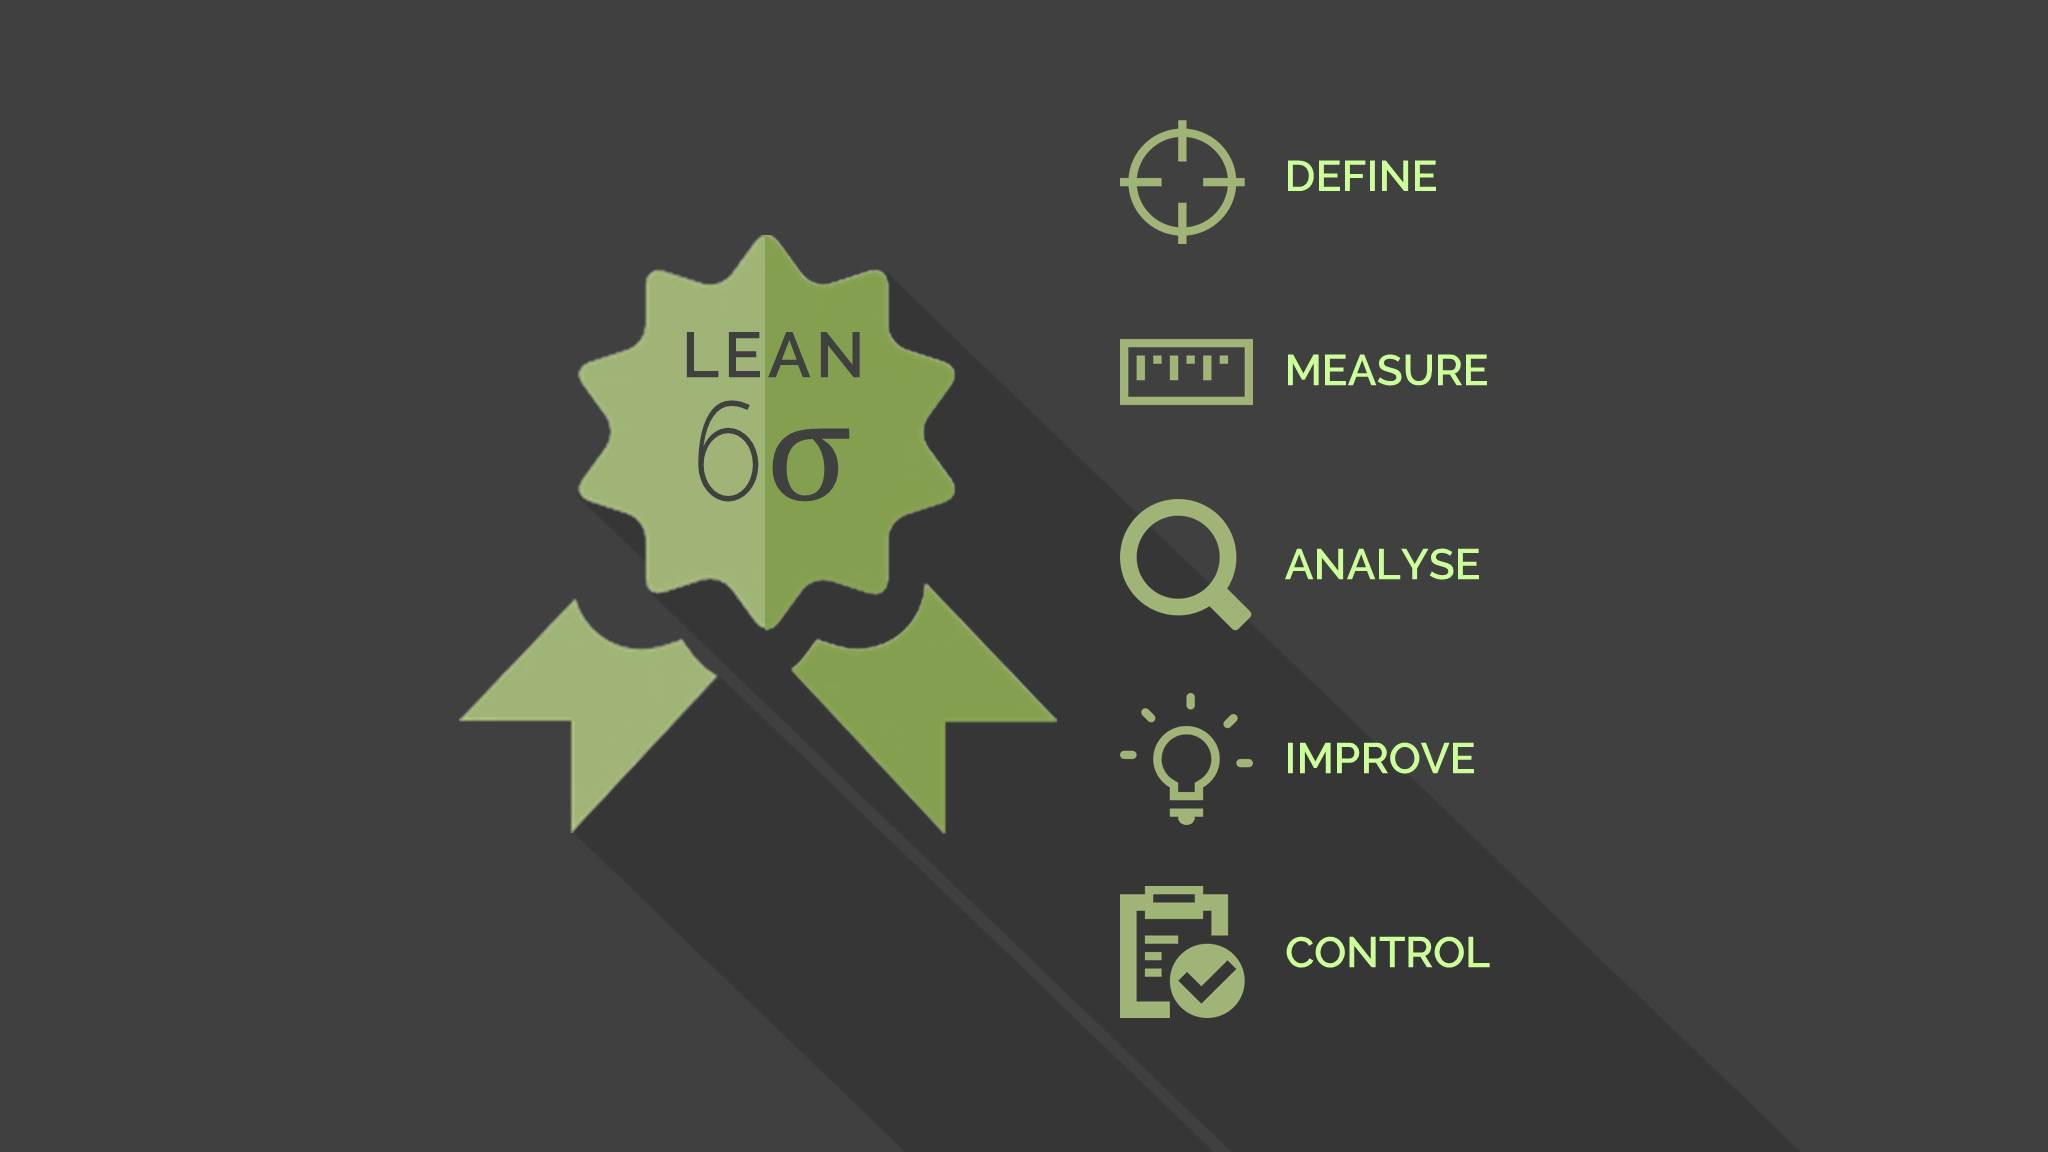 Lean Six Sigma Green Belt Practitioner Course In House Lean